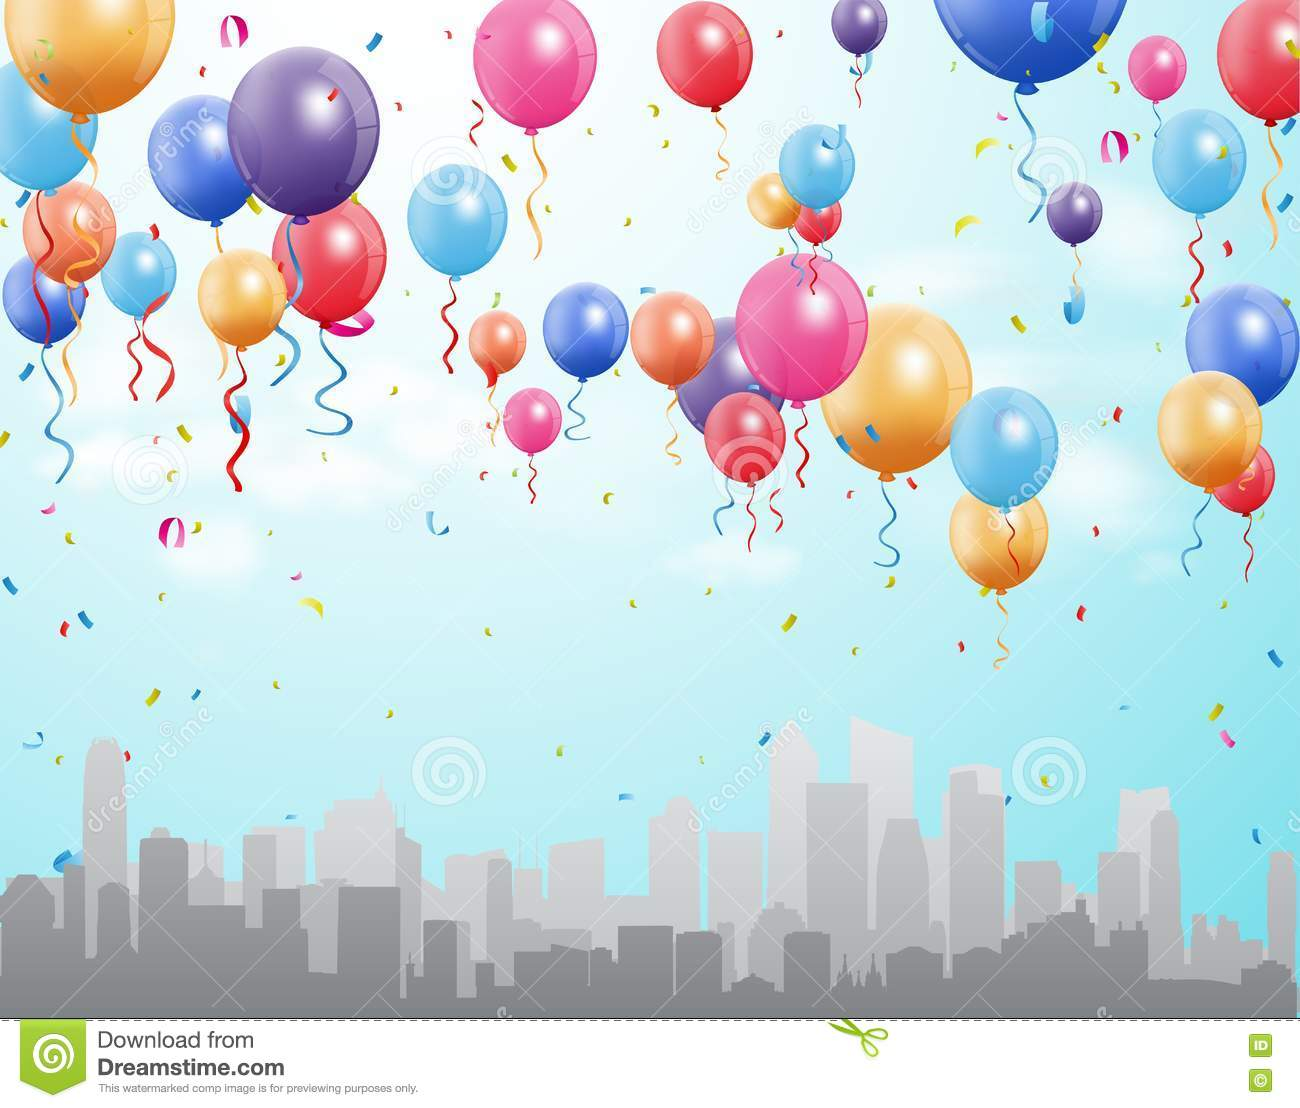 Happy Birthday Greetings With Balloon And Confetti Stock Vector